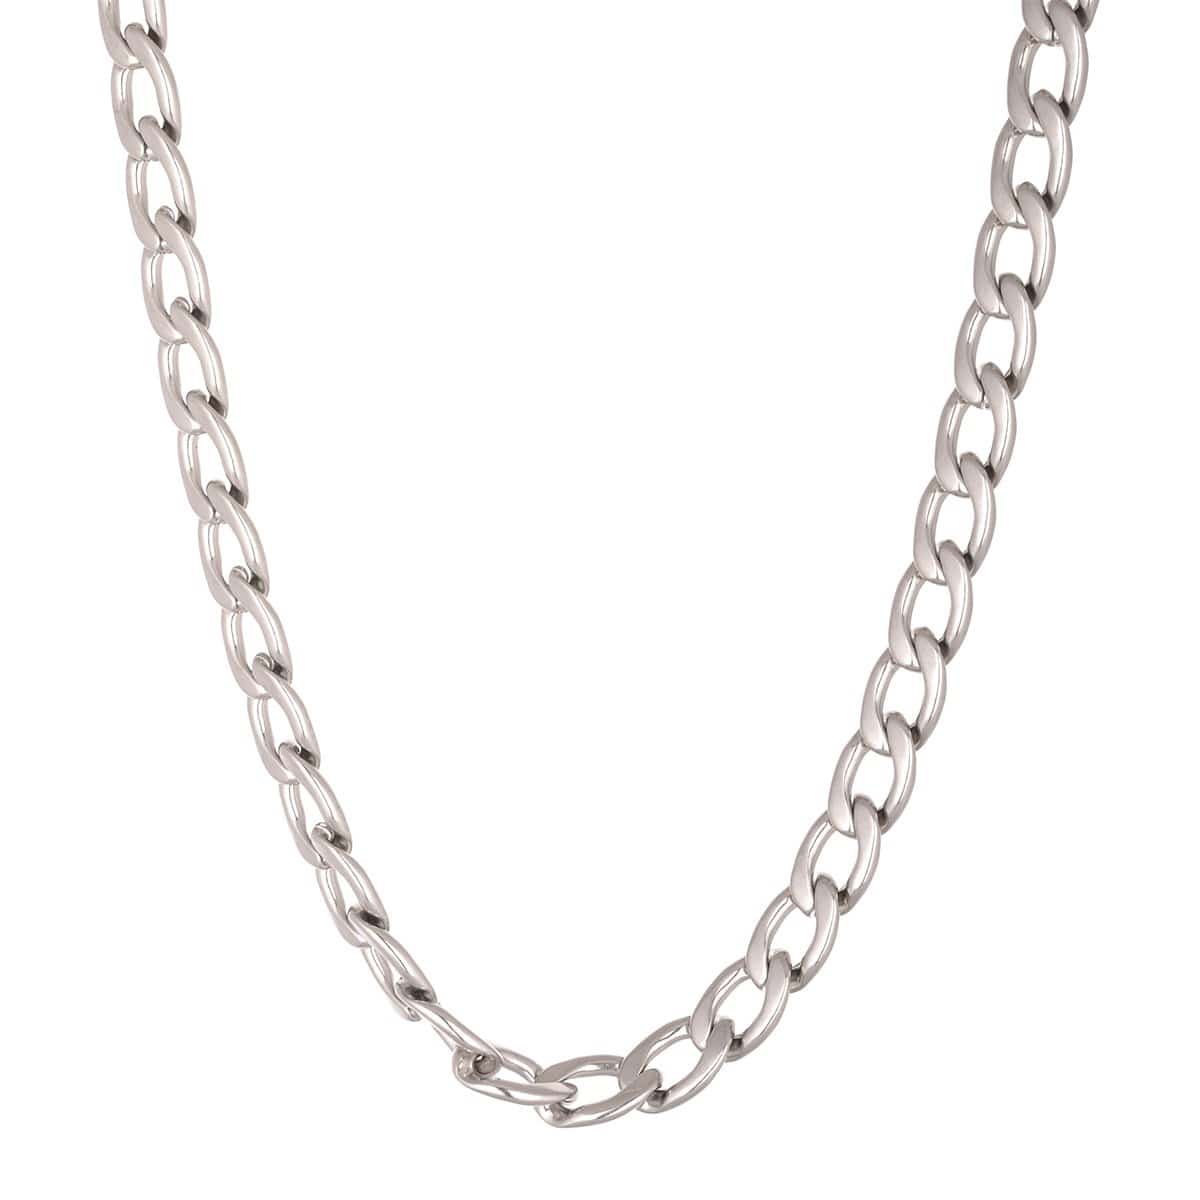 Silver Stainless Steel 10 mm Round Curb Chain Chains 18 Inch